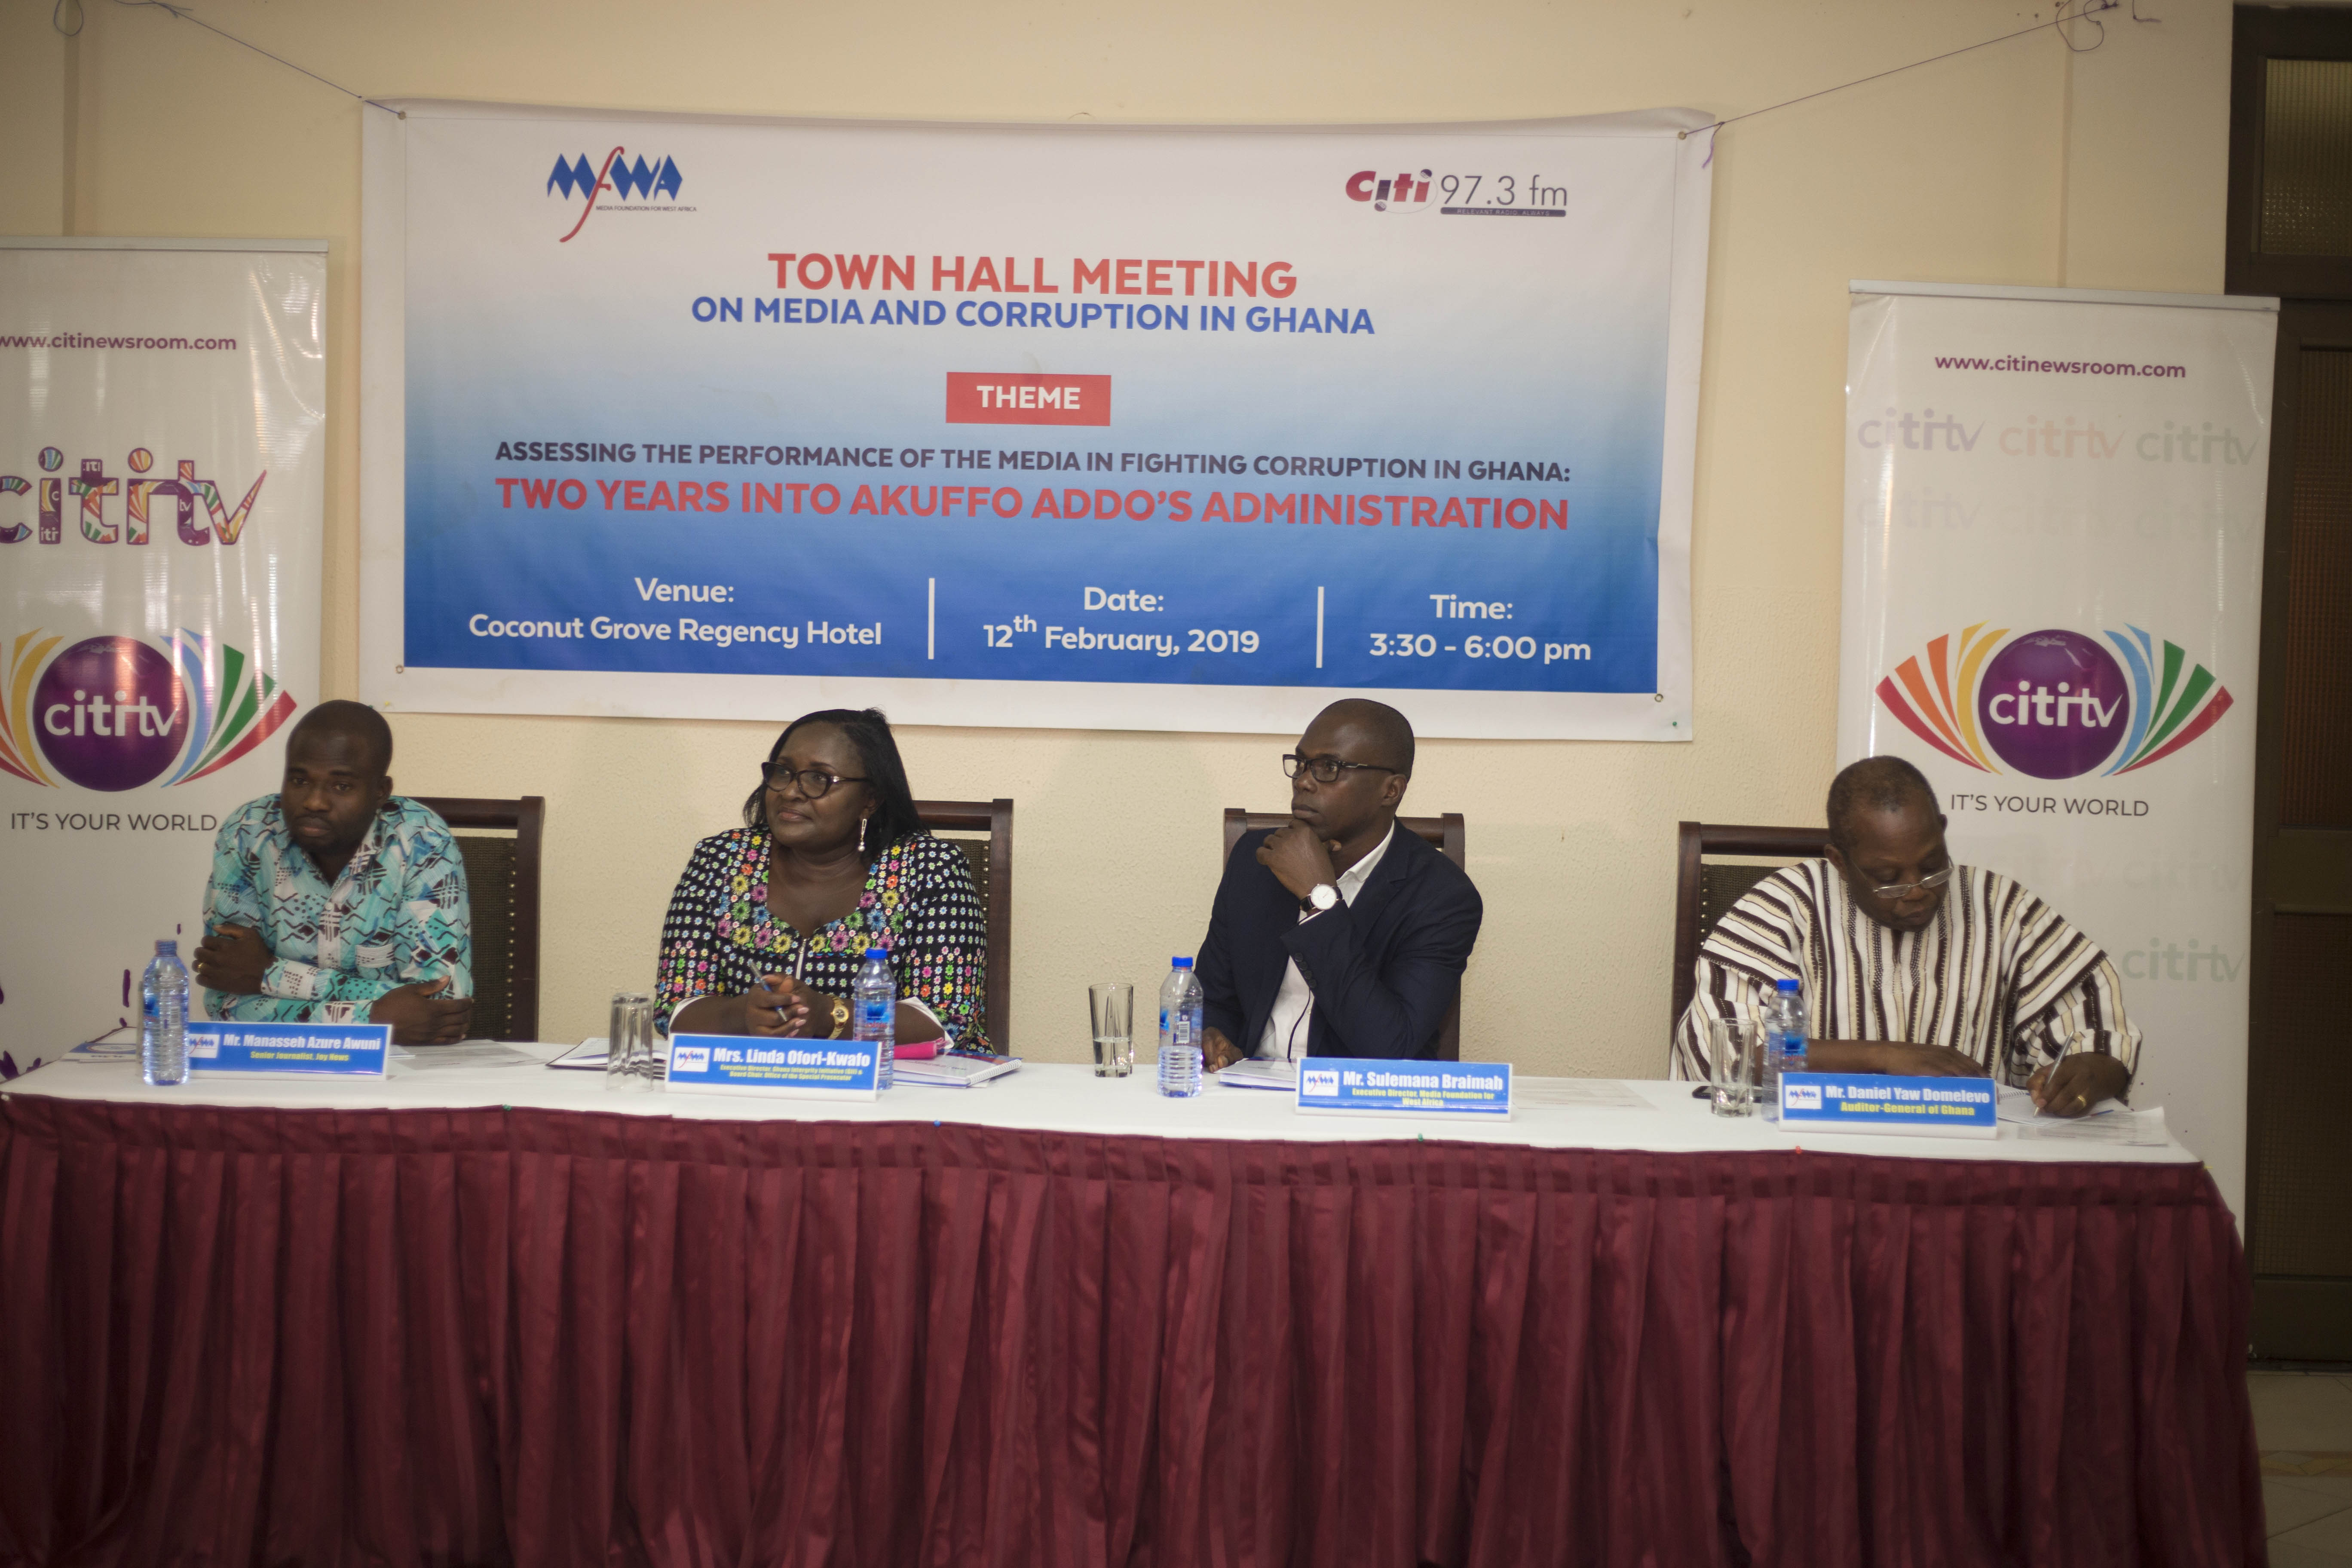 Media's Role in Fighting Corruption in Ghana: A 10-Point